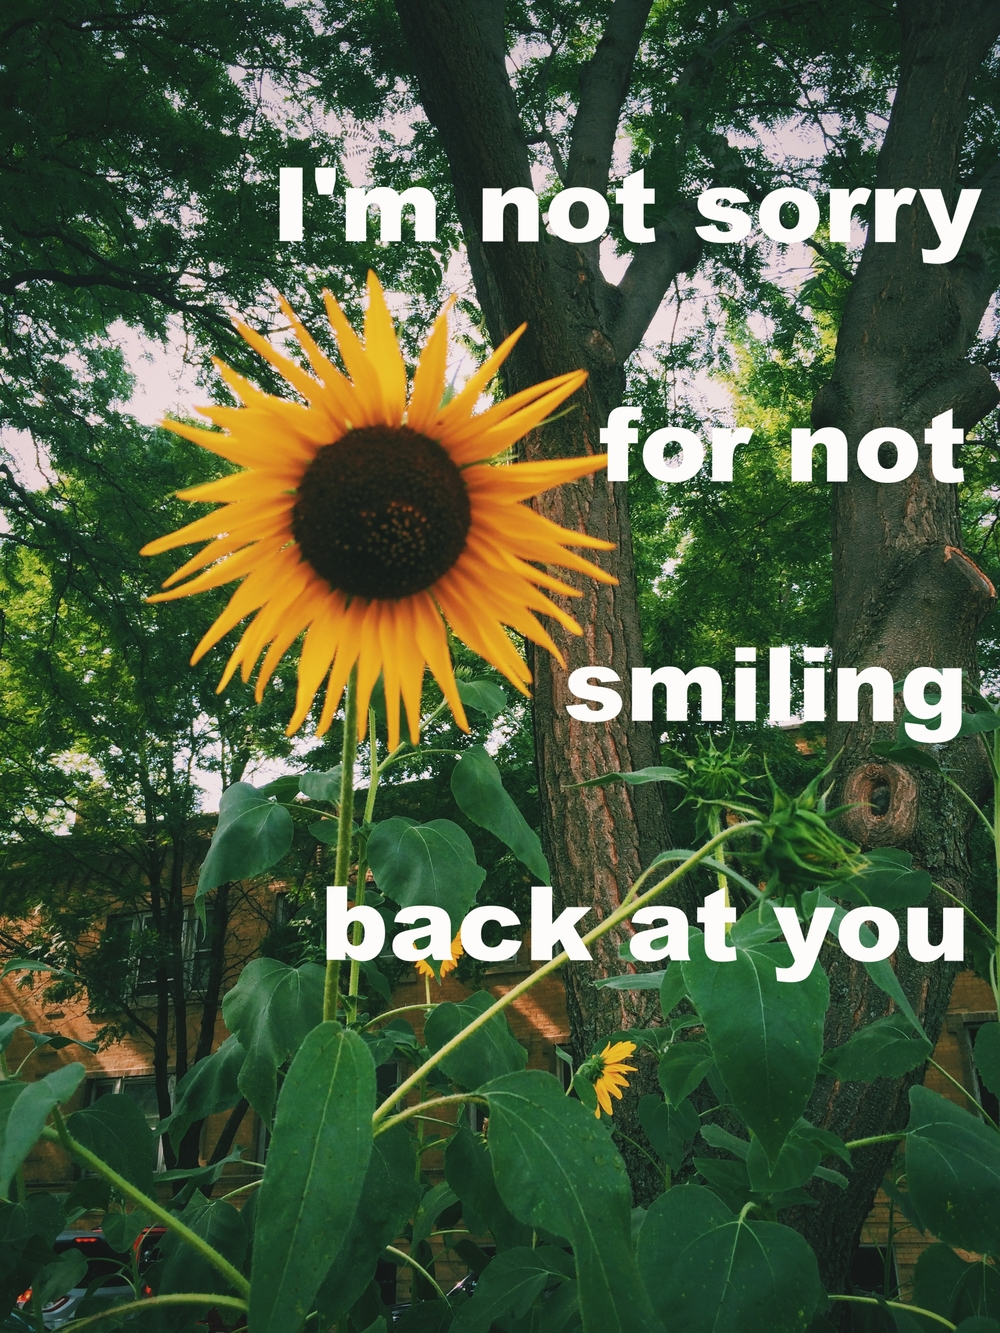 "Anonymous July 17 2016 Image of a sunflower facing forward among other sunflowers. ""I'm not sorry for not smiling back at you"" is overlaid."